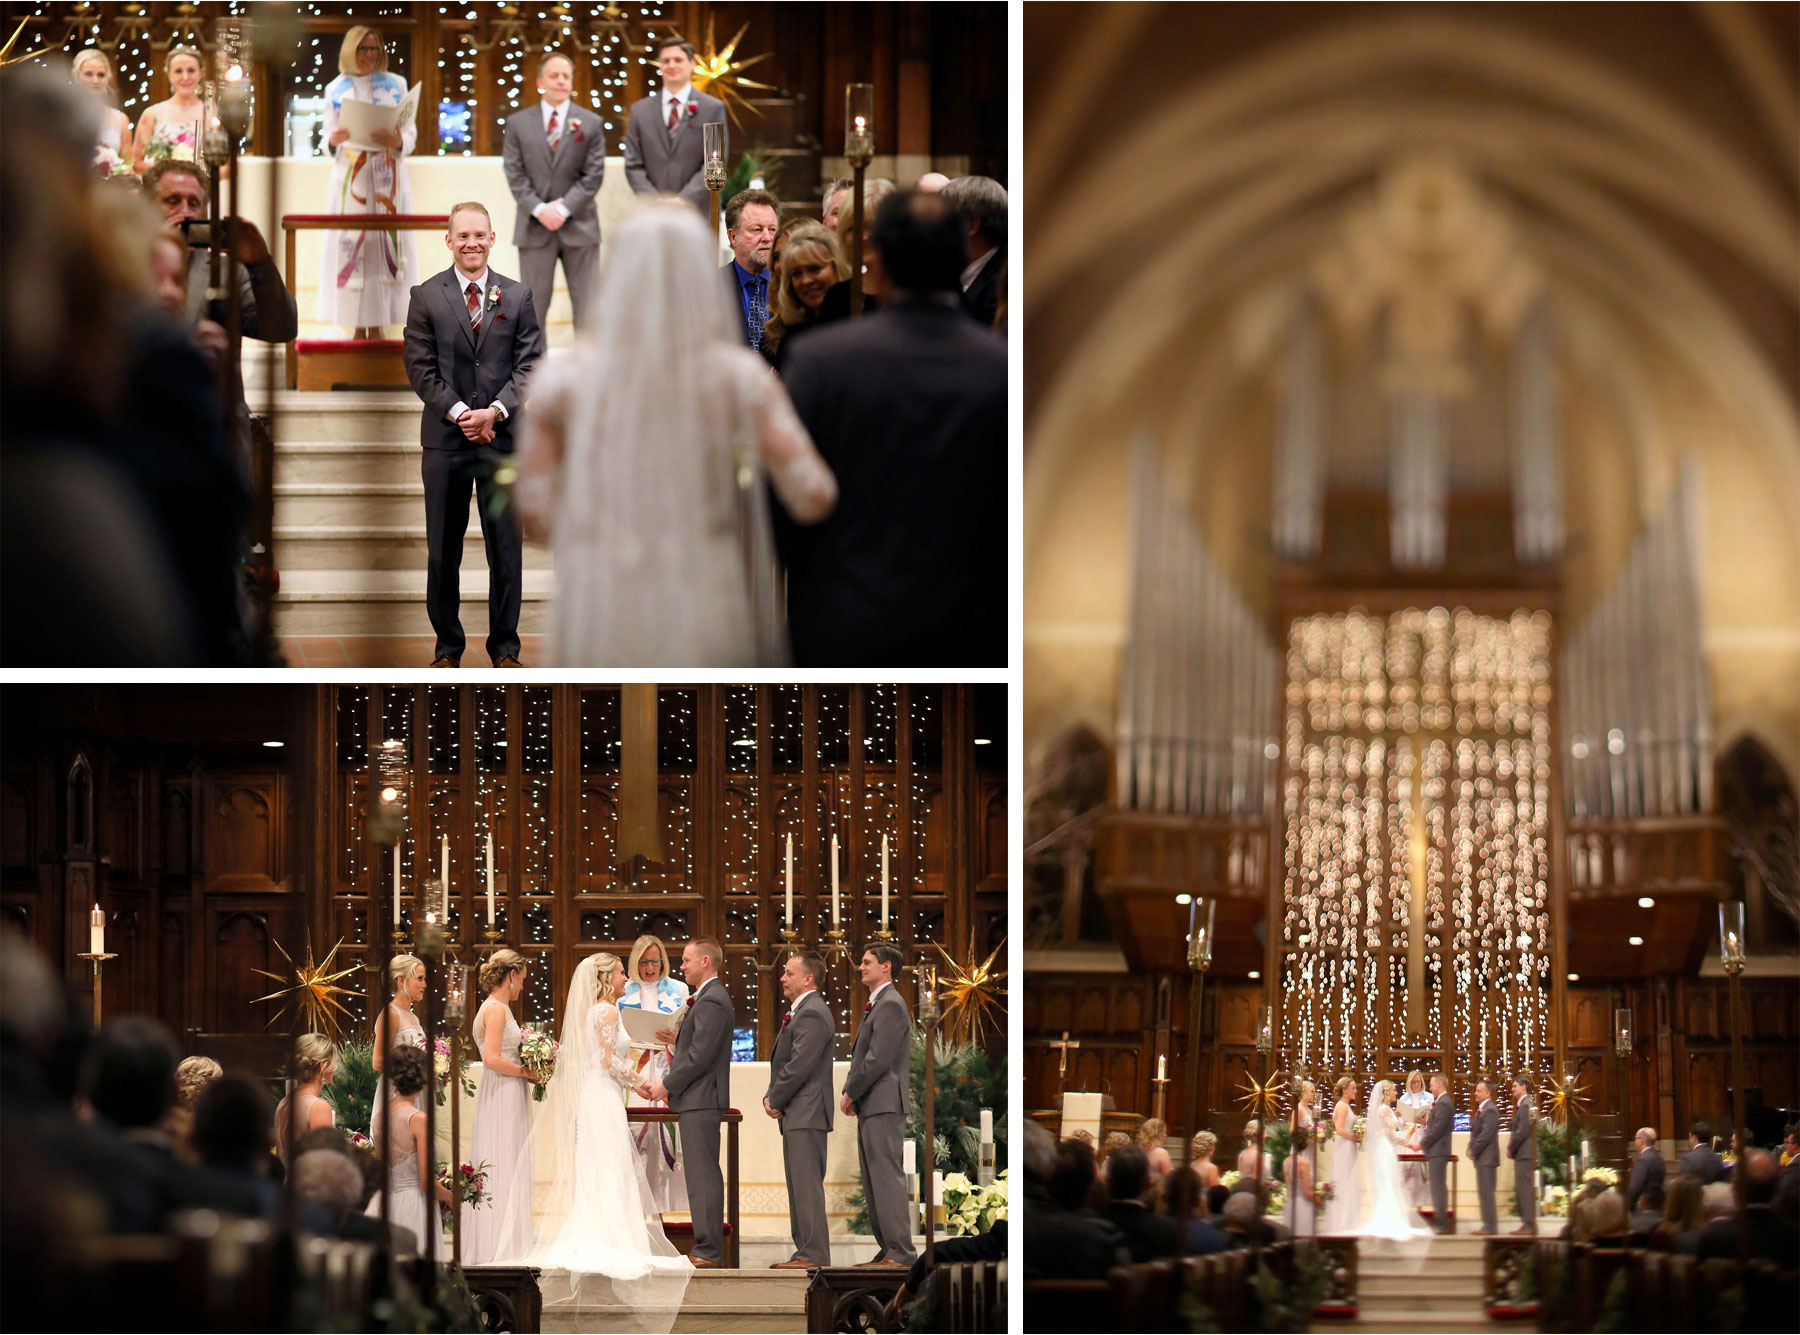 13-Minneapolis-Minnesota-Wedding-Photographer-by-Andrew-Vick-Photography-Winter-Central-Lutheran-Church-Ceremony-Bride-Groom-Father-Parents-Processional-Vows-Brittany-and-Joseph.jpg